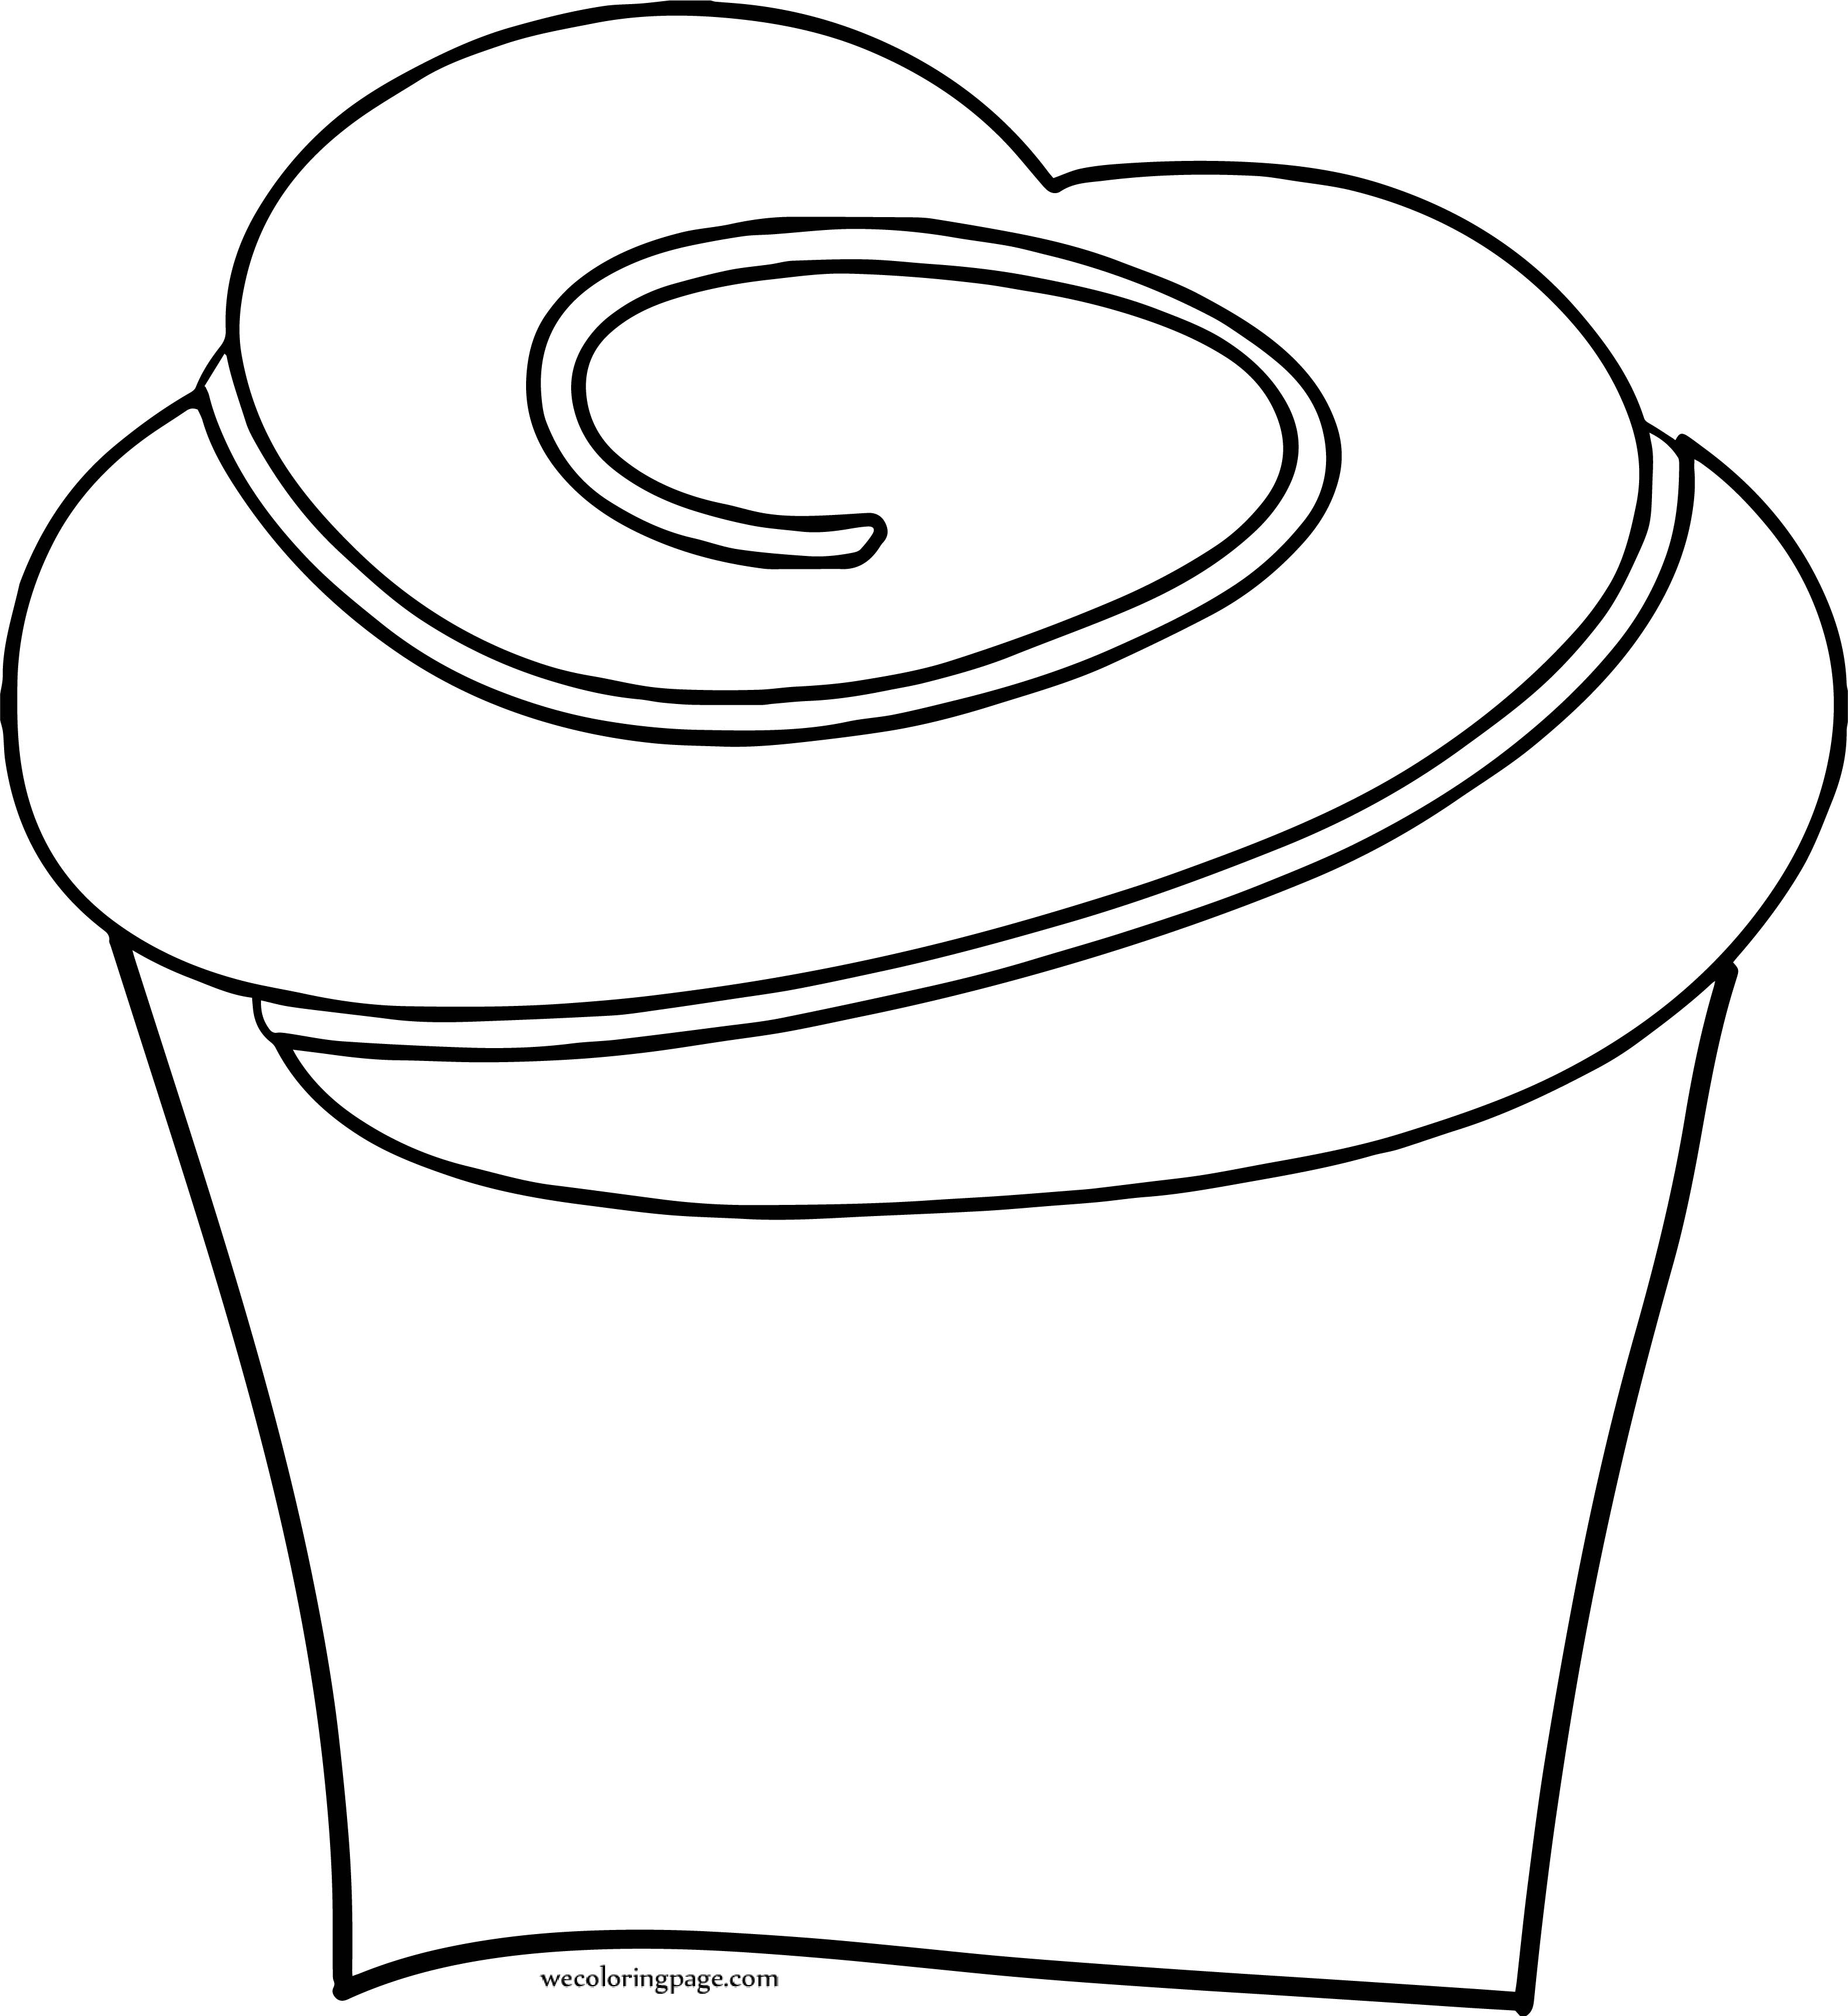 We Cupcake Coloring Page